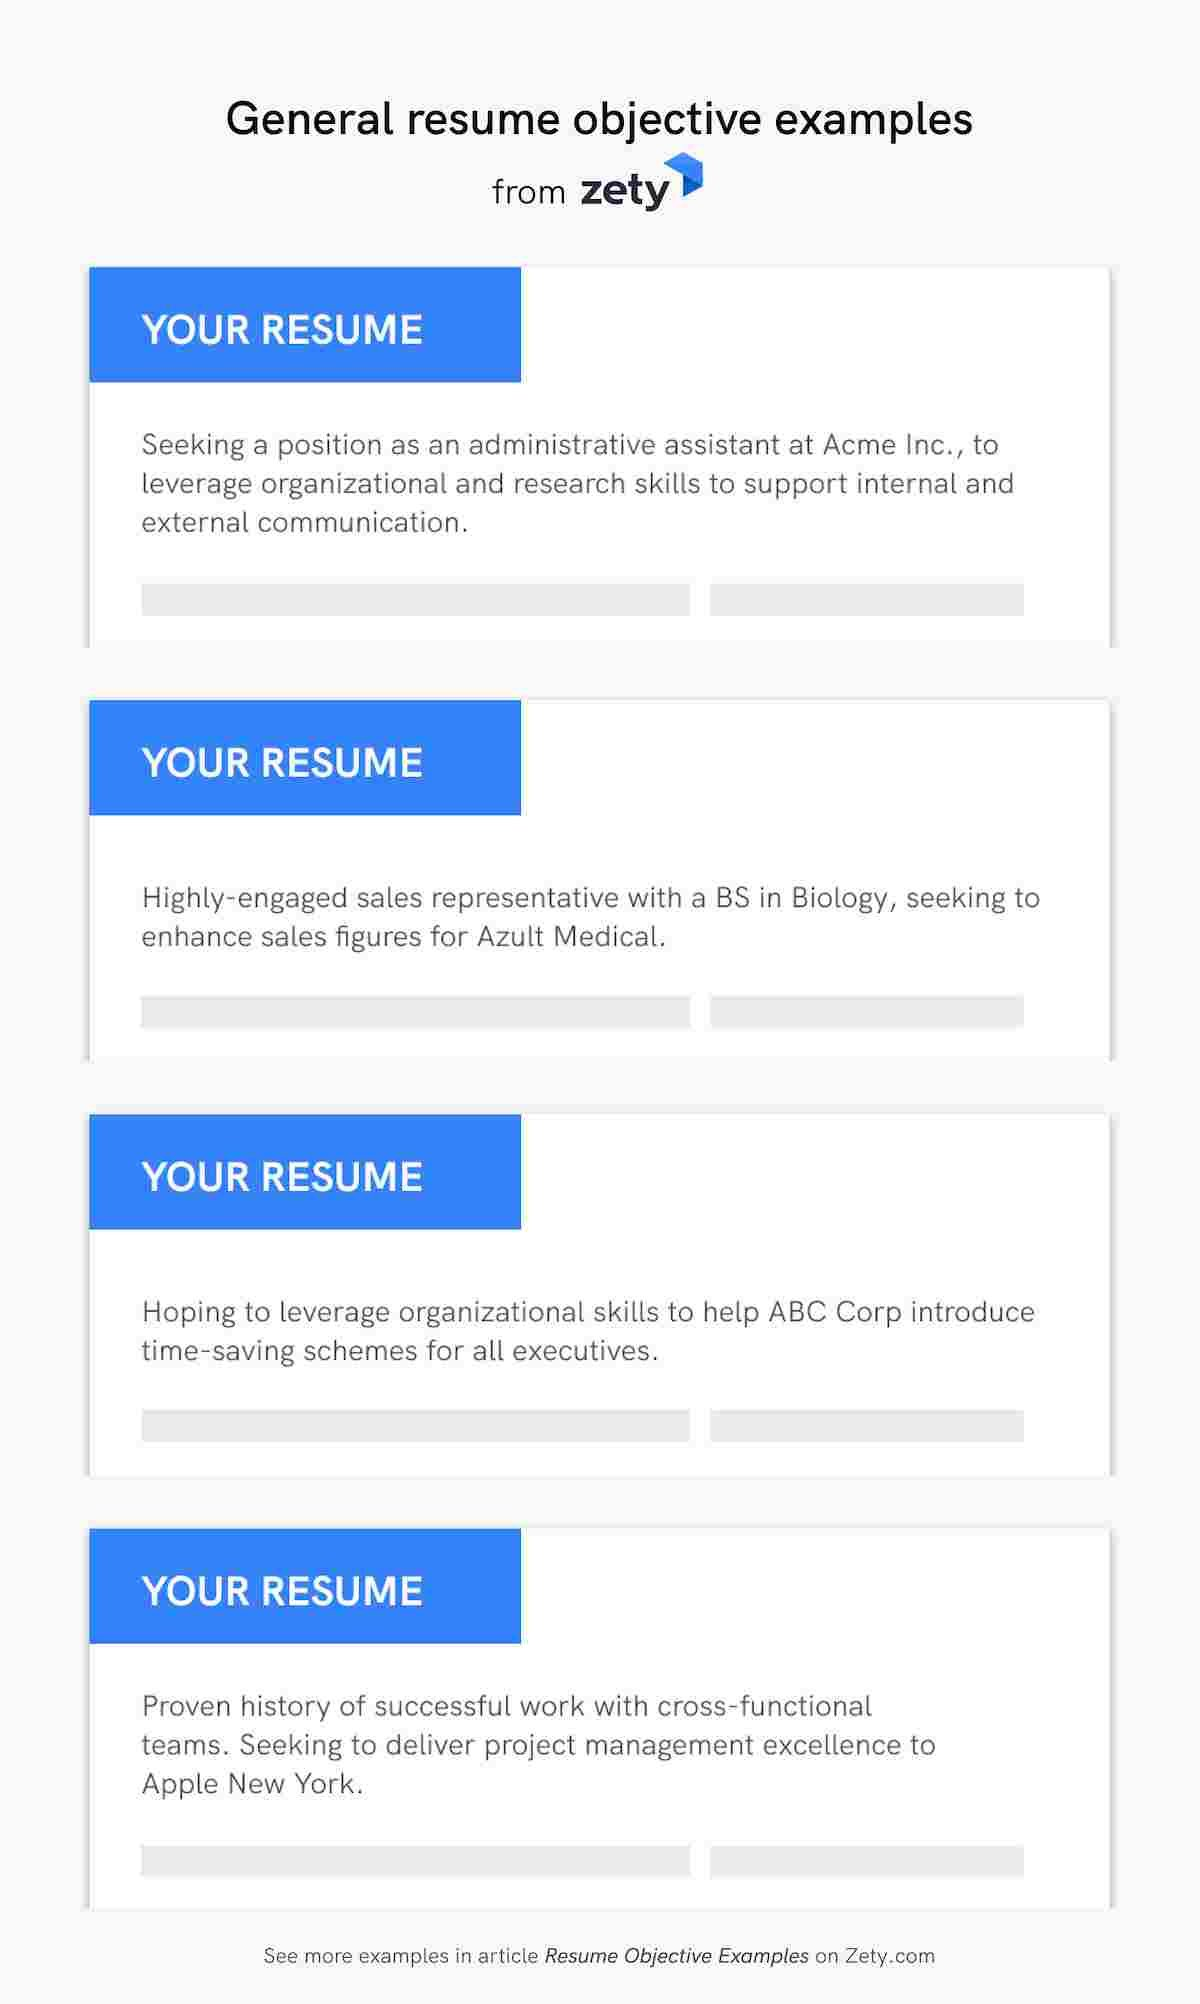 resume objective examples career objectives for all jobs strong samples general Resume Strong Resume Objective Samples